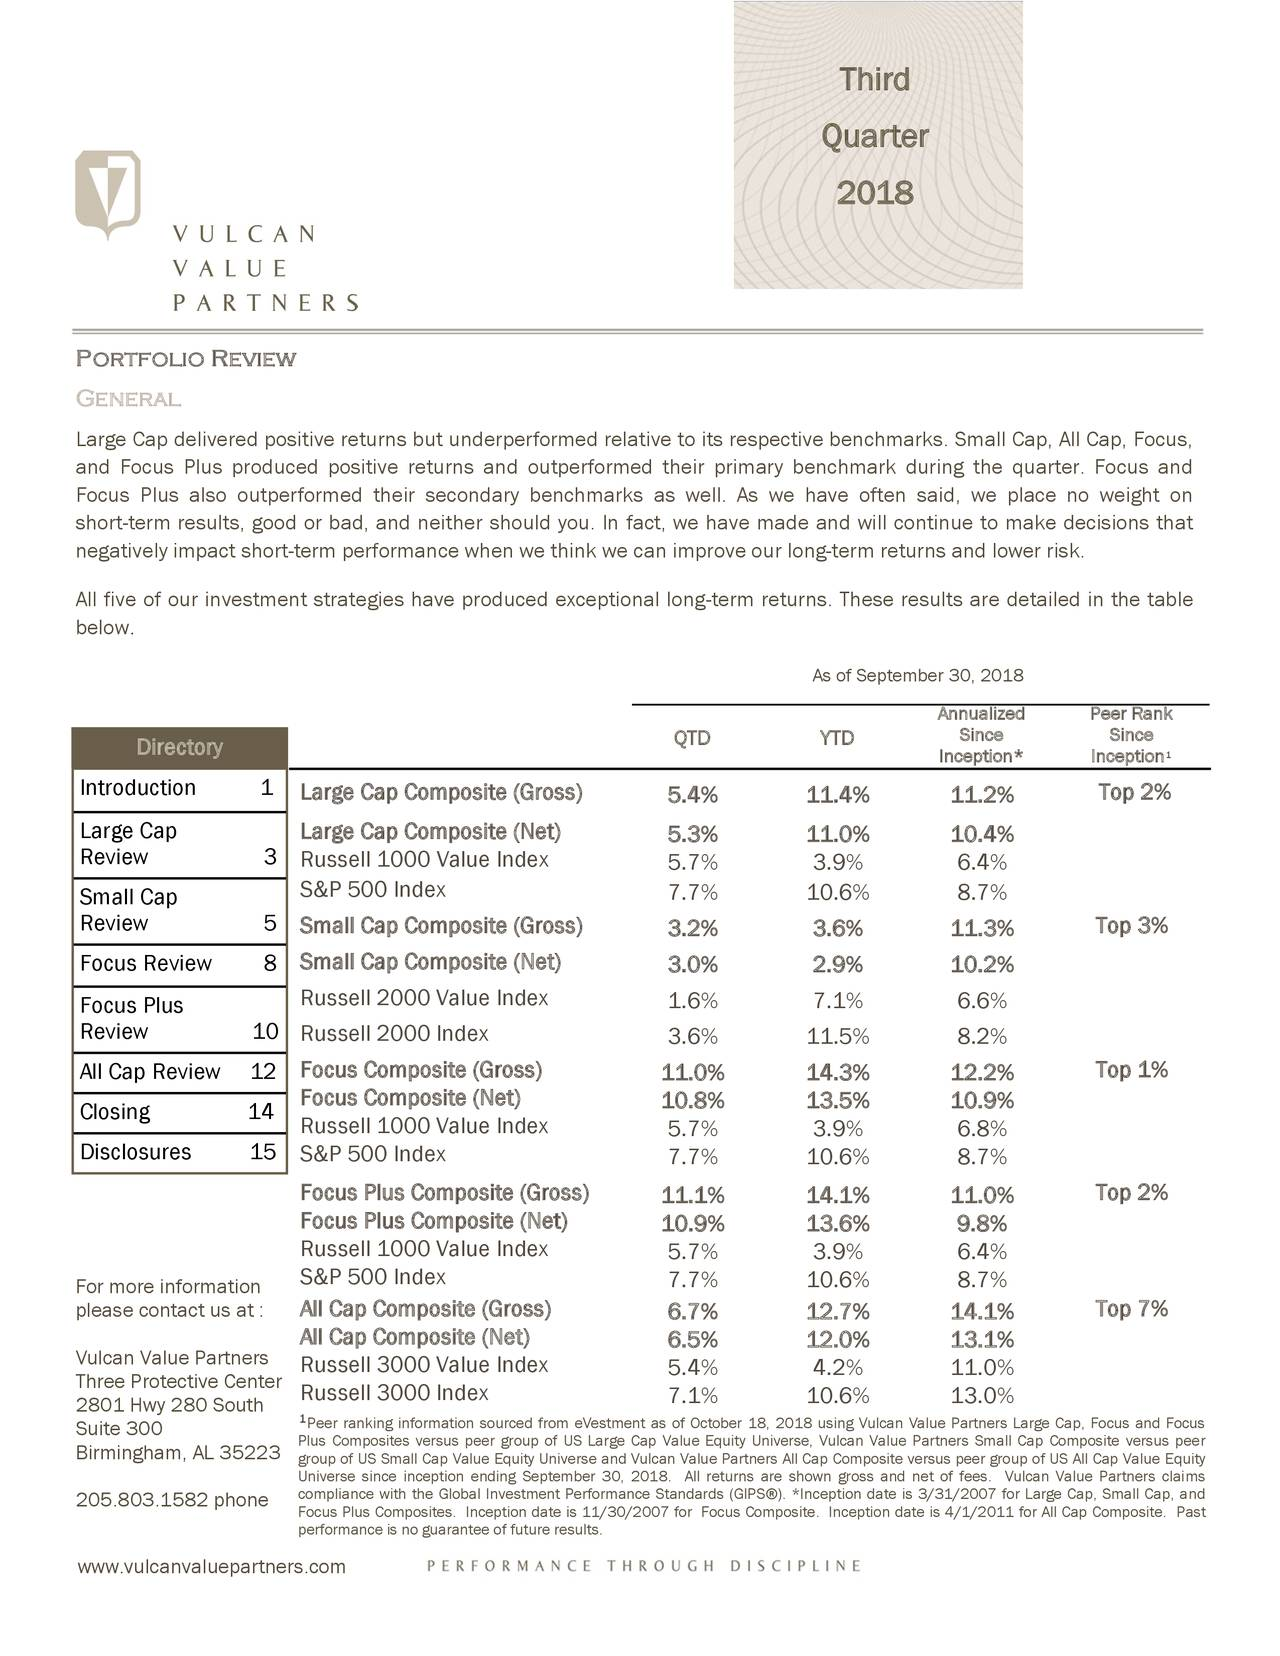 Quarter 2018 Portfolio Review General Large Cap delivered positive returns but underperformed relative to its respective benchmarks. Small Cap, All Cap, Focus, and Focus Plus produced positive returns and outperformed their primary benchmark during the quarter. Focus and Focus Plus also outperformed their secondary benchmarks as well. As we have often said, we place no weight on short-term results, good or bad, and neither should you. In fact, we have made and will continue to make decisions that negatively impact short-term performance when we think we can improve our long-term returns and lower risk. All five of our investment strategies have produced exceptional long-term returns. These results are detailed in the table below. As of September 30, 2018 Annualized Peer Rank Directory QTD YTD Since Since Inception* Incept¹on Introduction 1 Large Cap Composite (Gross) 5.4% 11.4% 11.2% Top 2% Large Cap Large Cap Composite (Net) 5.3% 11.0% 10.4% Review 3 Russell 1000 Value Index 5.7% 3.9% 6.4% Small Cap S&P 500 Index 7.7% 10.6% 8.7% Review 5 Small Cap Composite (Gross) 3.2% 3.6% 11.3% Top 3% Focus Review 8 Small Cap Composite (Net) 3.0% 2.9% 10.2% Focus Plus Russell 2000 Value Index 1.6% 7.1% 6.6% Review 10 Russell 2000 Index 3.6% 11.5% 8.2% All Cap Review 12 Focus Composite (Gross) 11.0% 14.3% 12.2% Top 1% Focus Composite (Net) 10.8% 13.5% 10.9% Closing 14 Russell 1000 Value Index 5.7% 3.9% 6.8% Disclosures 15 S&P 500 Index 7.7% 10.6% 8.7% Focus Plus Composite (Gross) 11.1% 14.1% 11.0% Top 2% Focus Plus Composite (Net) 10.9% 13.6% 9.8% Russell 1000 Value Index 5.7% 3.9% 6.4% S&P 500 Index 7.7% 10.6% 8.7% For more information please contact us at :ll Cap Composite (Gross) 6.7% 12.7% 14.1% Top 7% All Cap Composite (Net) 6.5% 12.0% 13.1% Vulcan Value PartnersRussell 3000 Value Index 5.4% 4.2% 11.0% Three Protective CentRussell 3000 Index 2801 Hwy 280 South 7.1% 10.6% 13.0% Suite 300 Plus Composites versus peer group of US Large Cap Value Equity Universe, Vulcan Value Partners Small Cap Composite versus peer Birmingham, AL 35223 group of US Small Cap Value Equity Universe and Vulcan Value Partners All Cap Composite versus peer group of US All Cap Value Equity Universe since inception ending September 30, 2018. All returns are shown gross and net of fees. Vulcan Value Partners claims 205.803.1582 phone compliance with the Global Investment Performance Standards (GIPS®). *Inception date is 3/31/2007 for Large Cap, Small Cap, and Focus Plus Composites. Inception date is 11/30/2007 for Focus Composite. Inception date is 4/1/2011 for All Cap Composite. Past performance is no guarantee of future results. www.vulcanvaluepartners.com